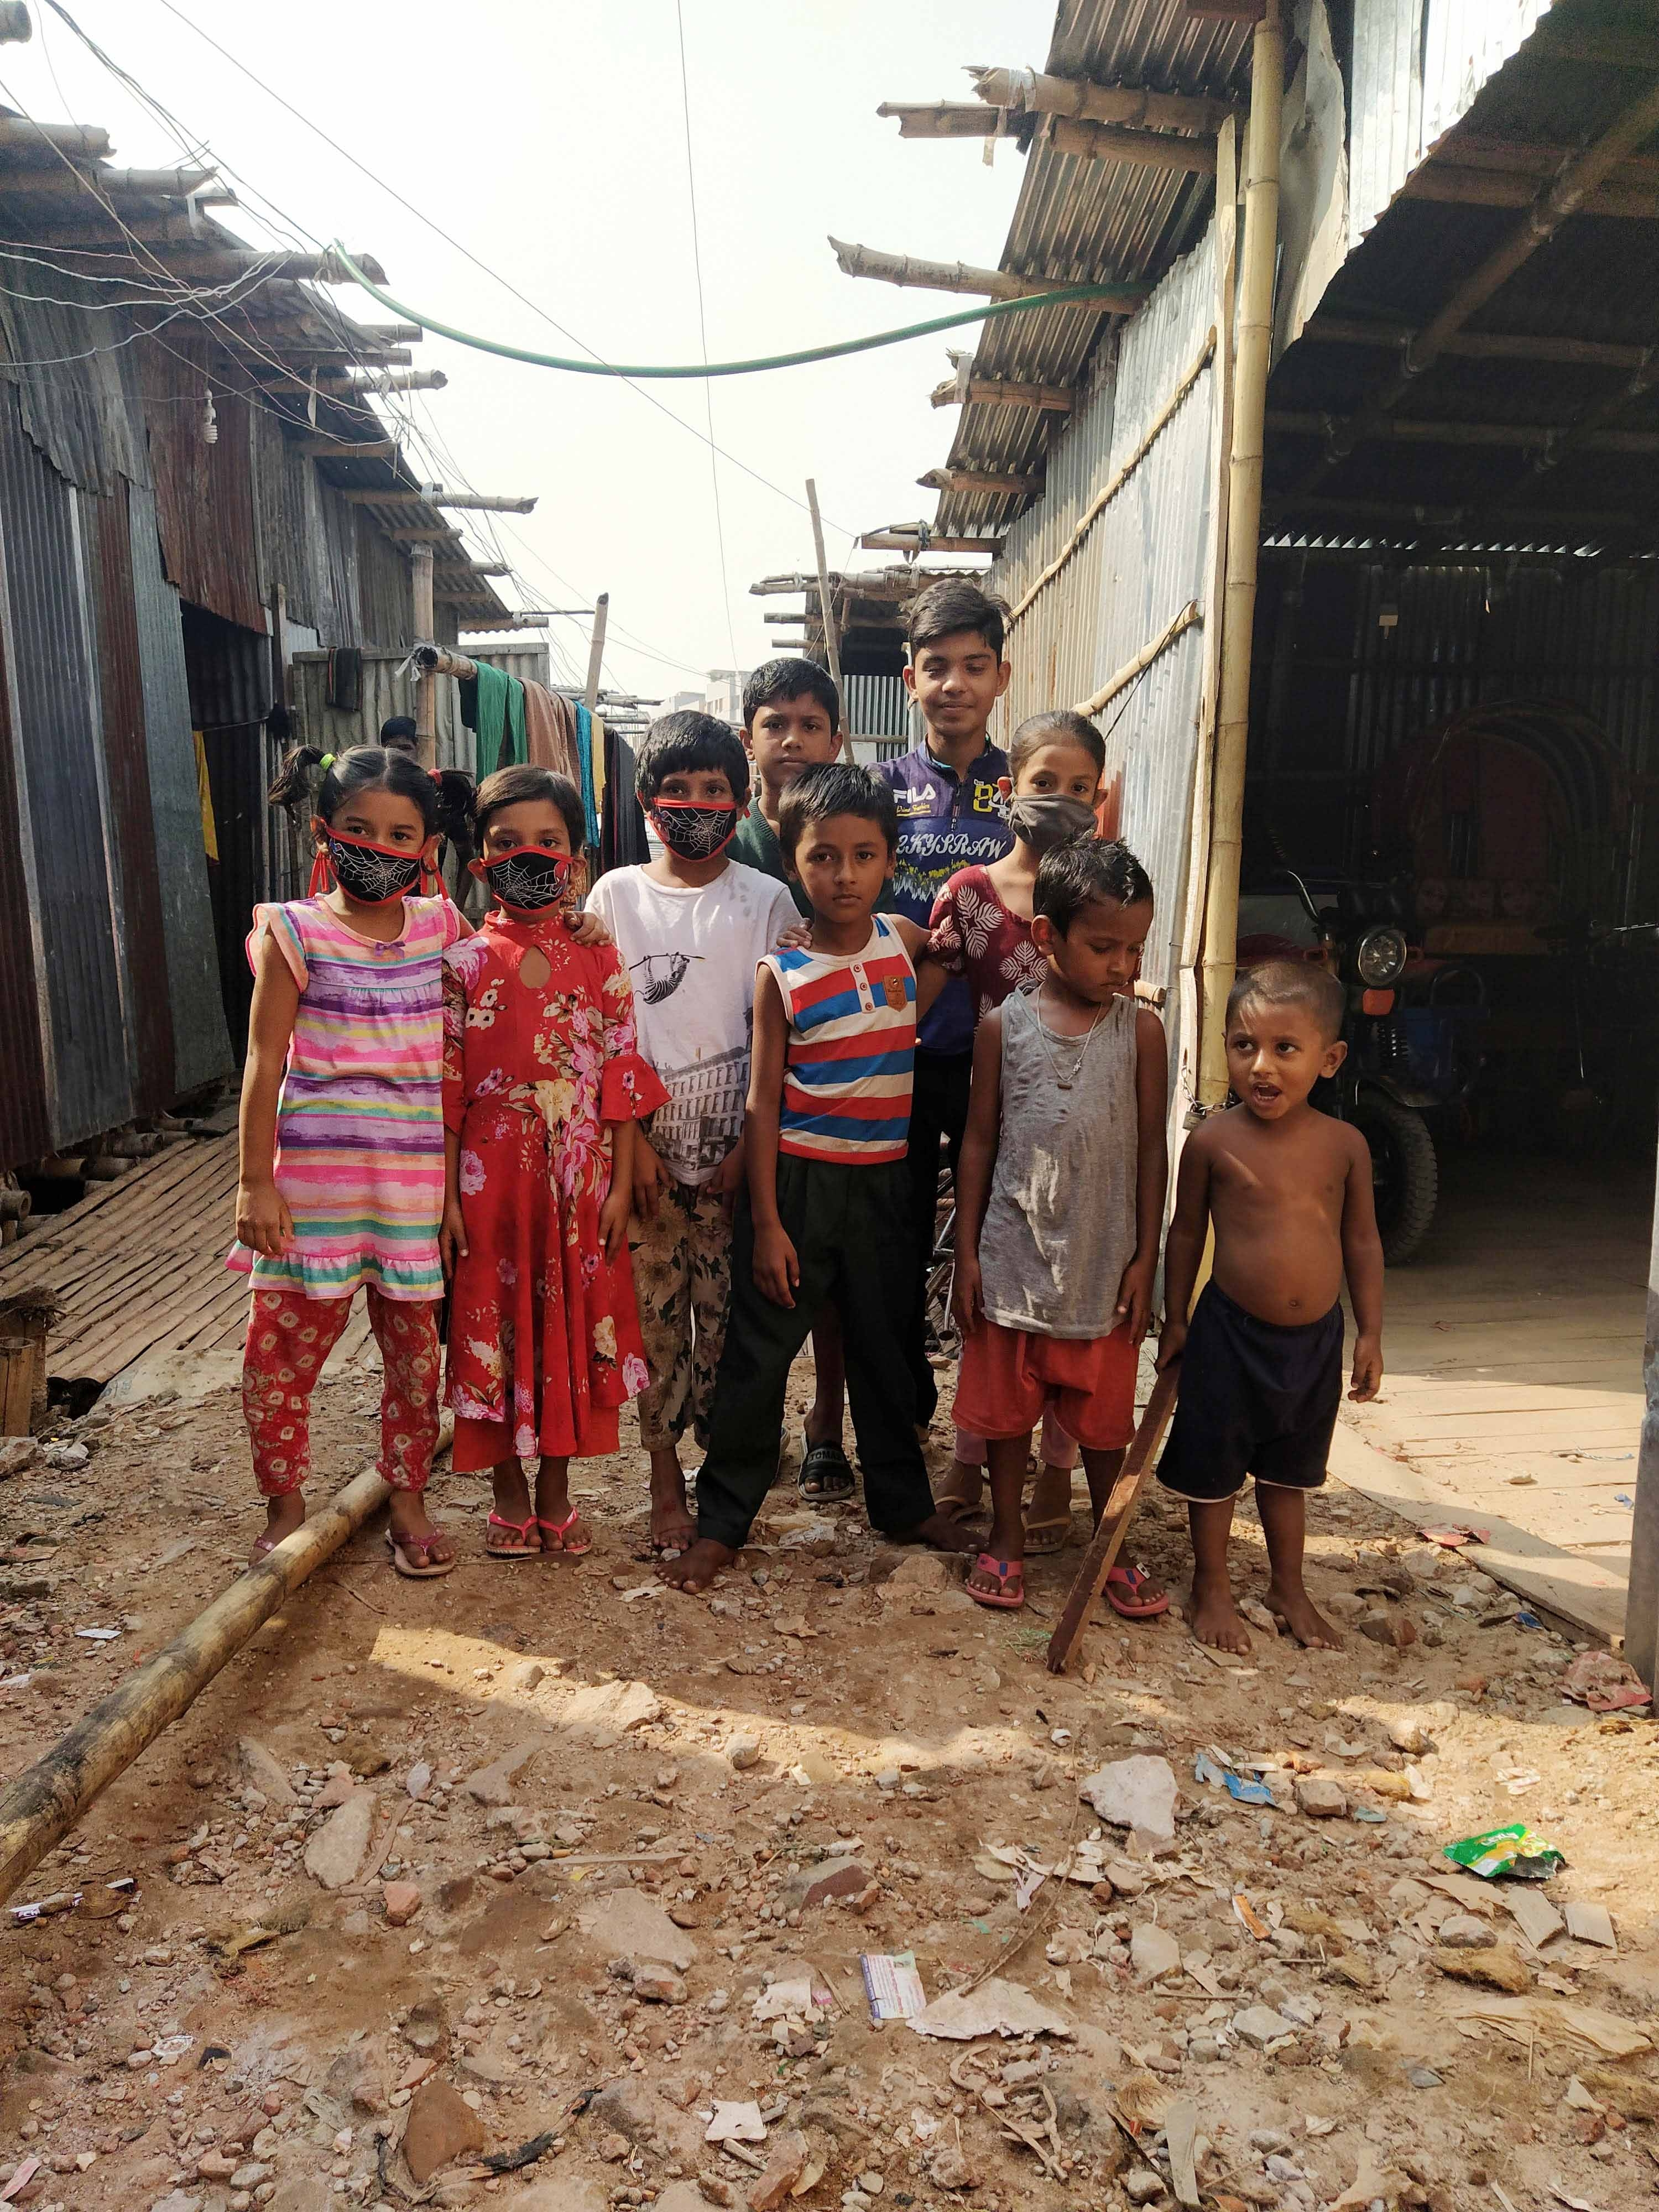 Slum dwellers: How are they passing pandemic days?